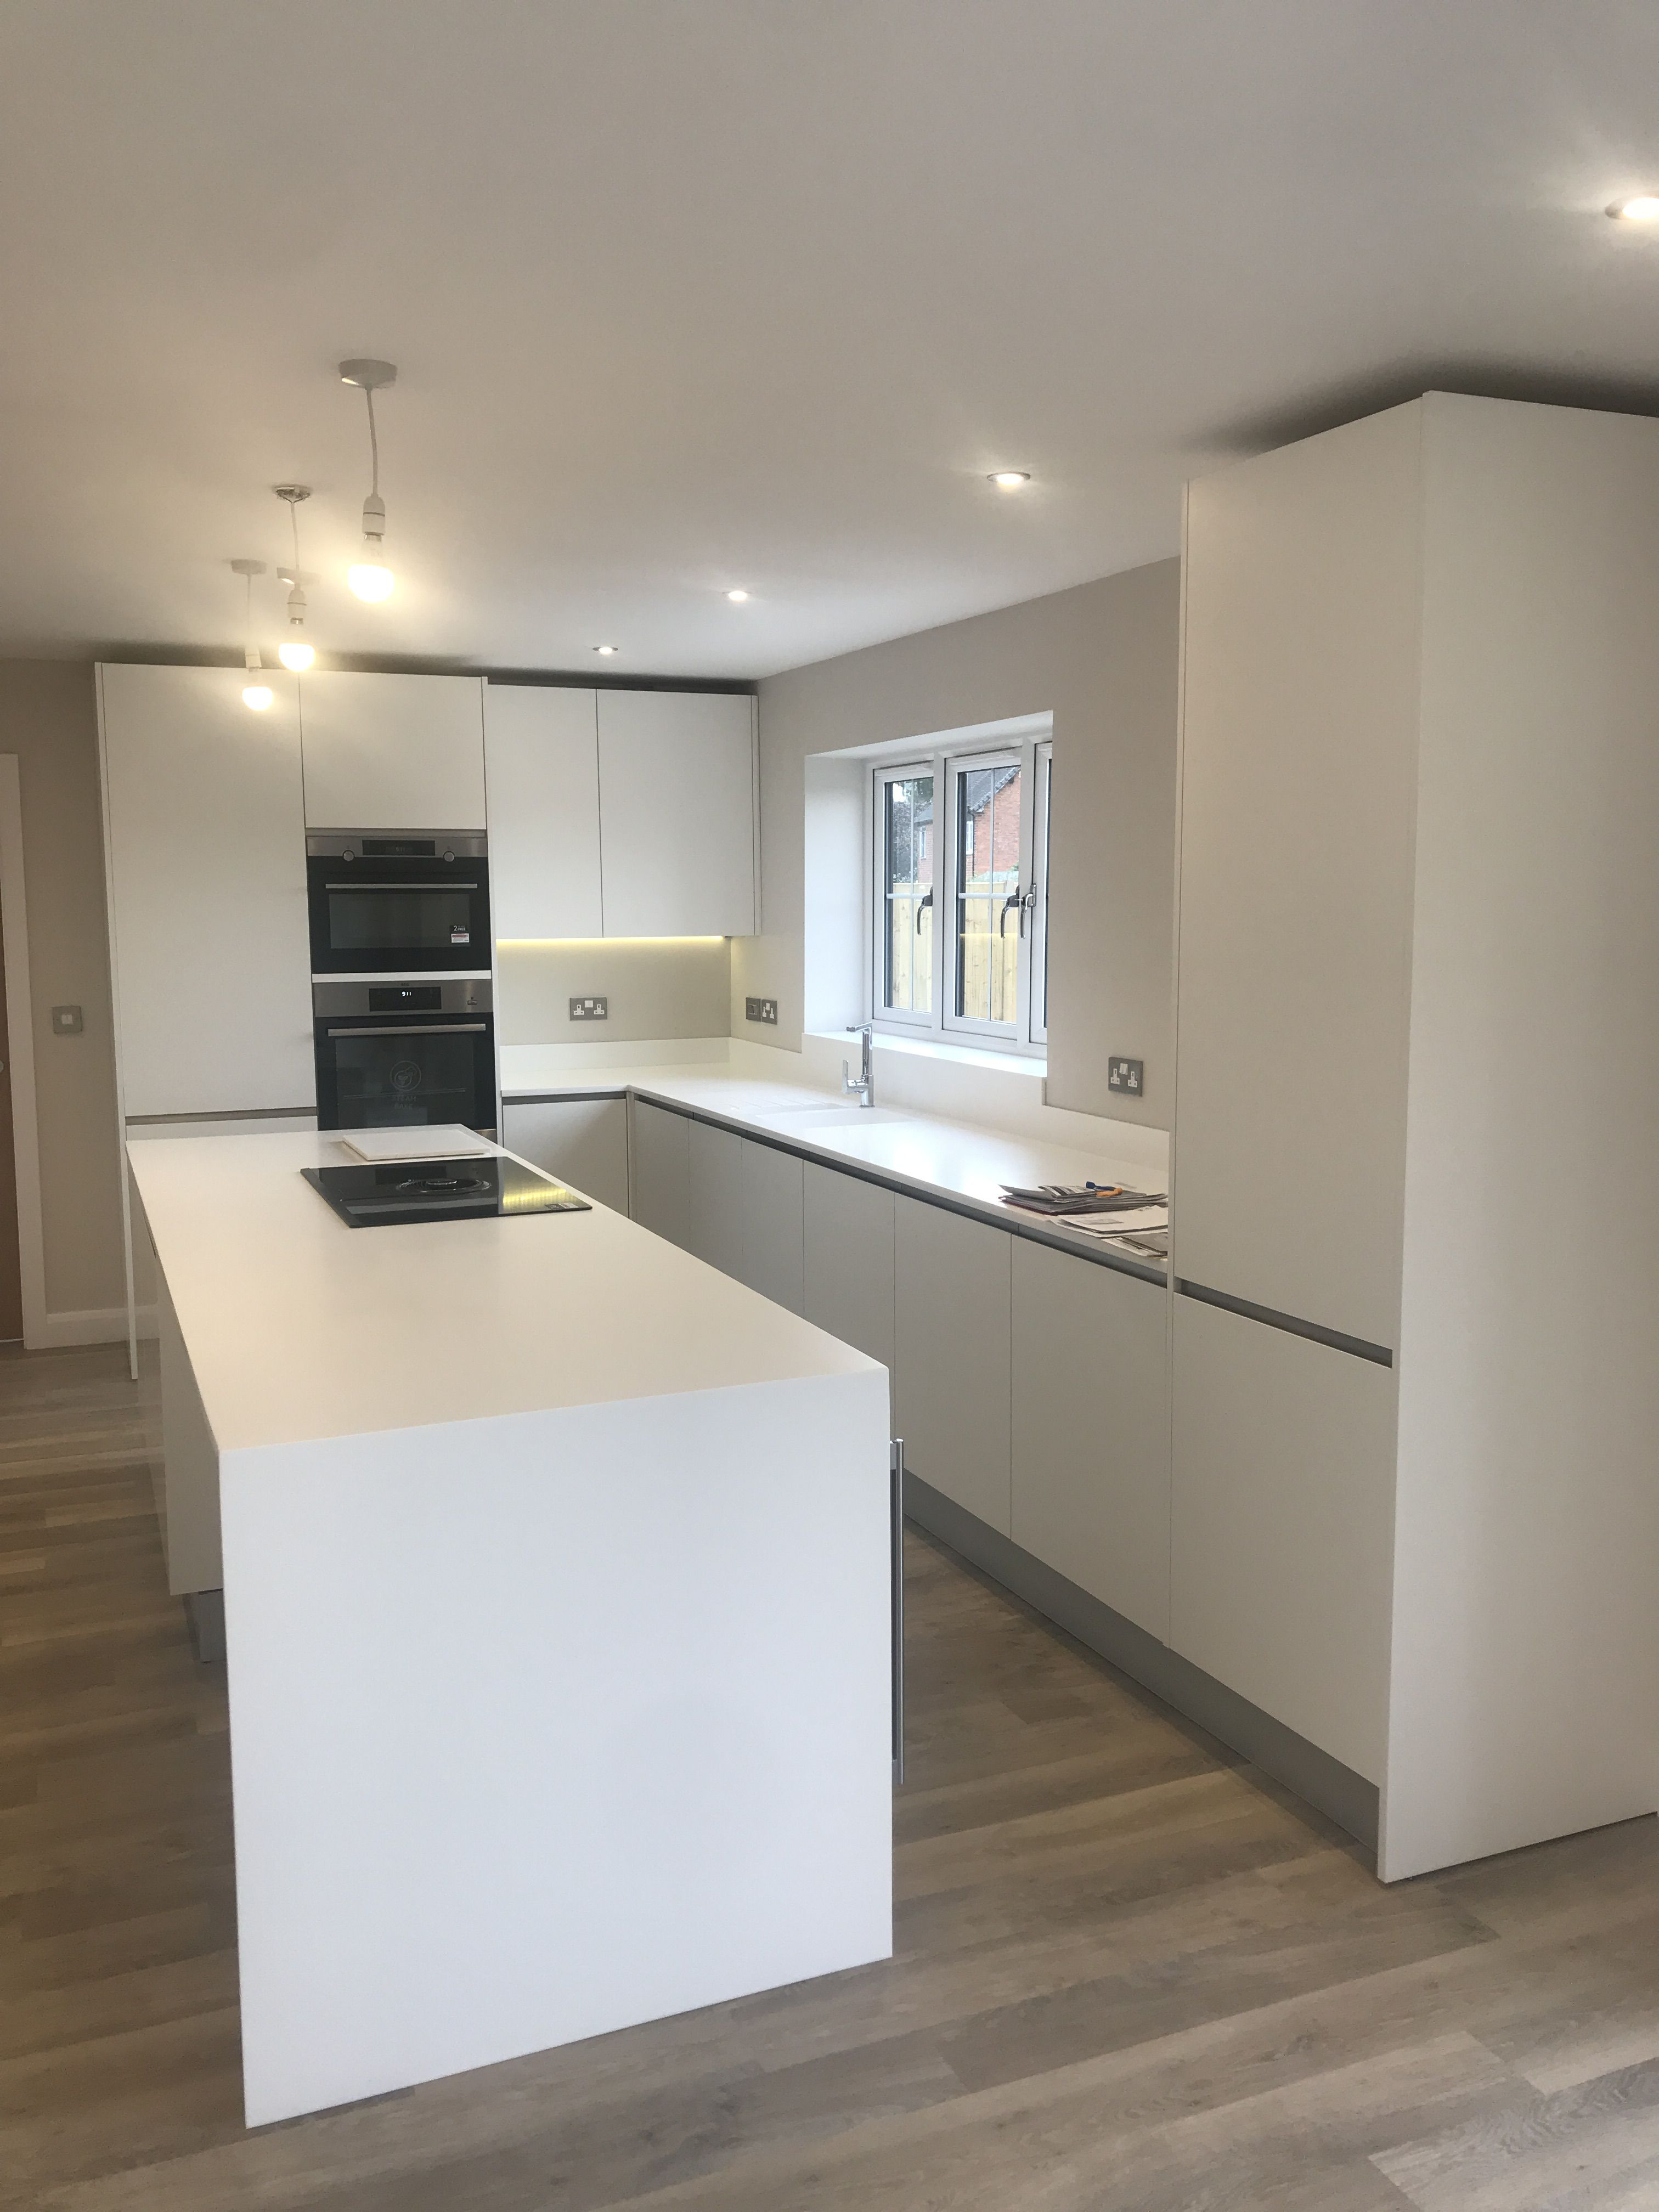 This Gorgeous Porcelanosa Kitchen Is Immaculate And Modern The Snow White Krion Worktops Gives This Kitchen Such A Sophisticated Look Another A Interer Kuhnya